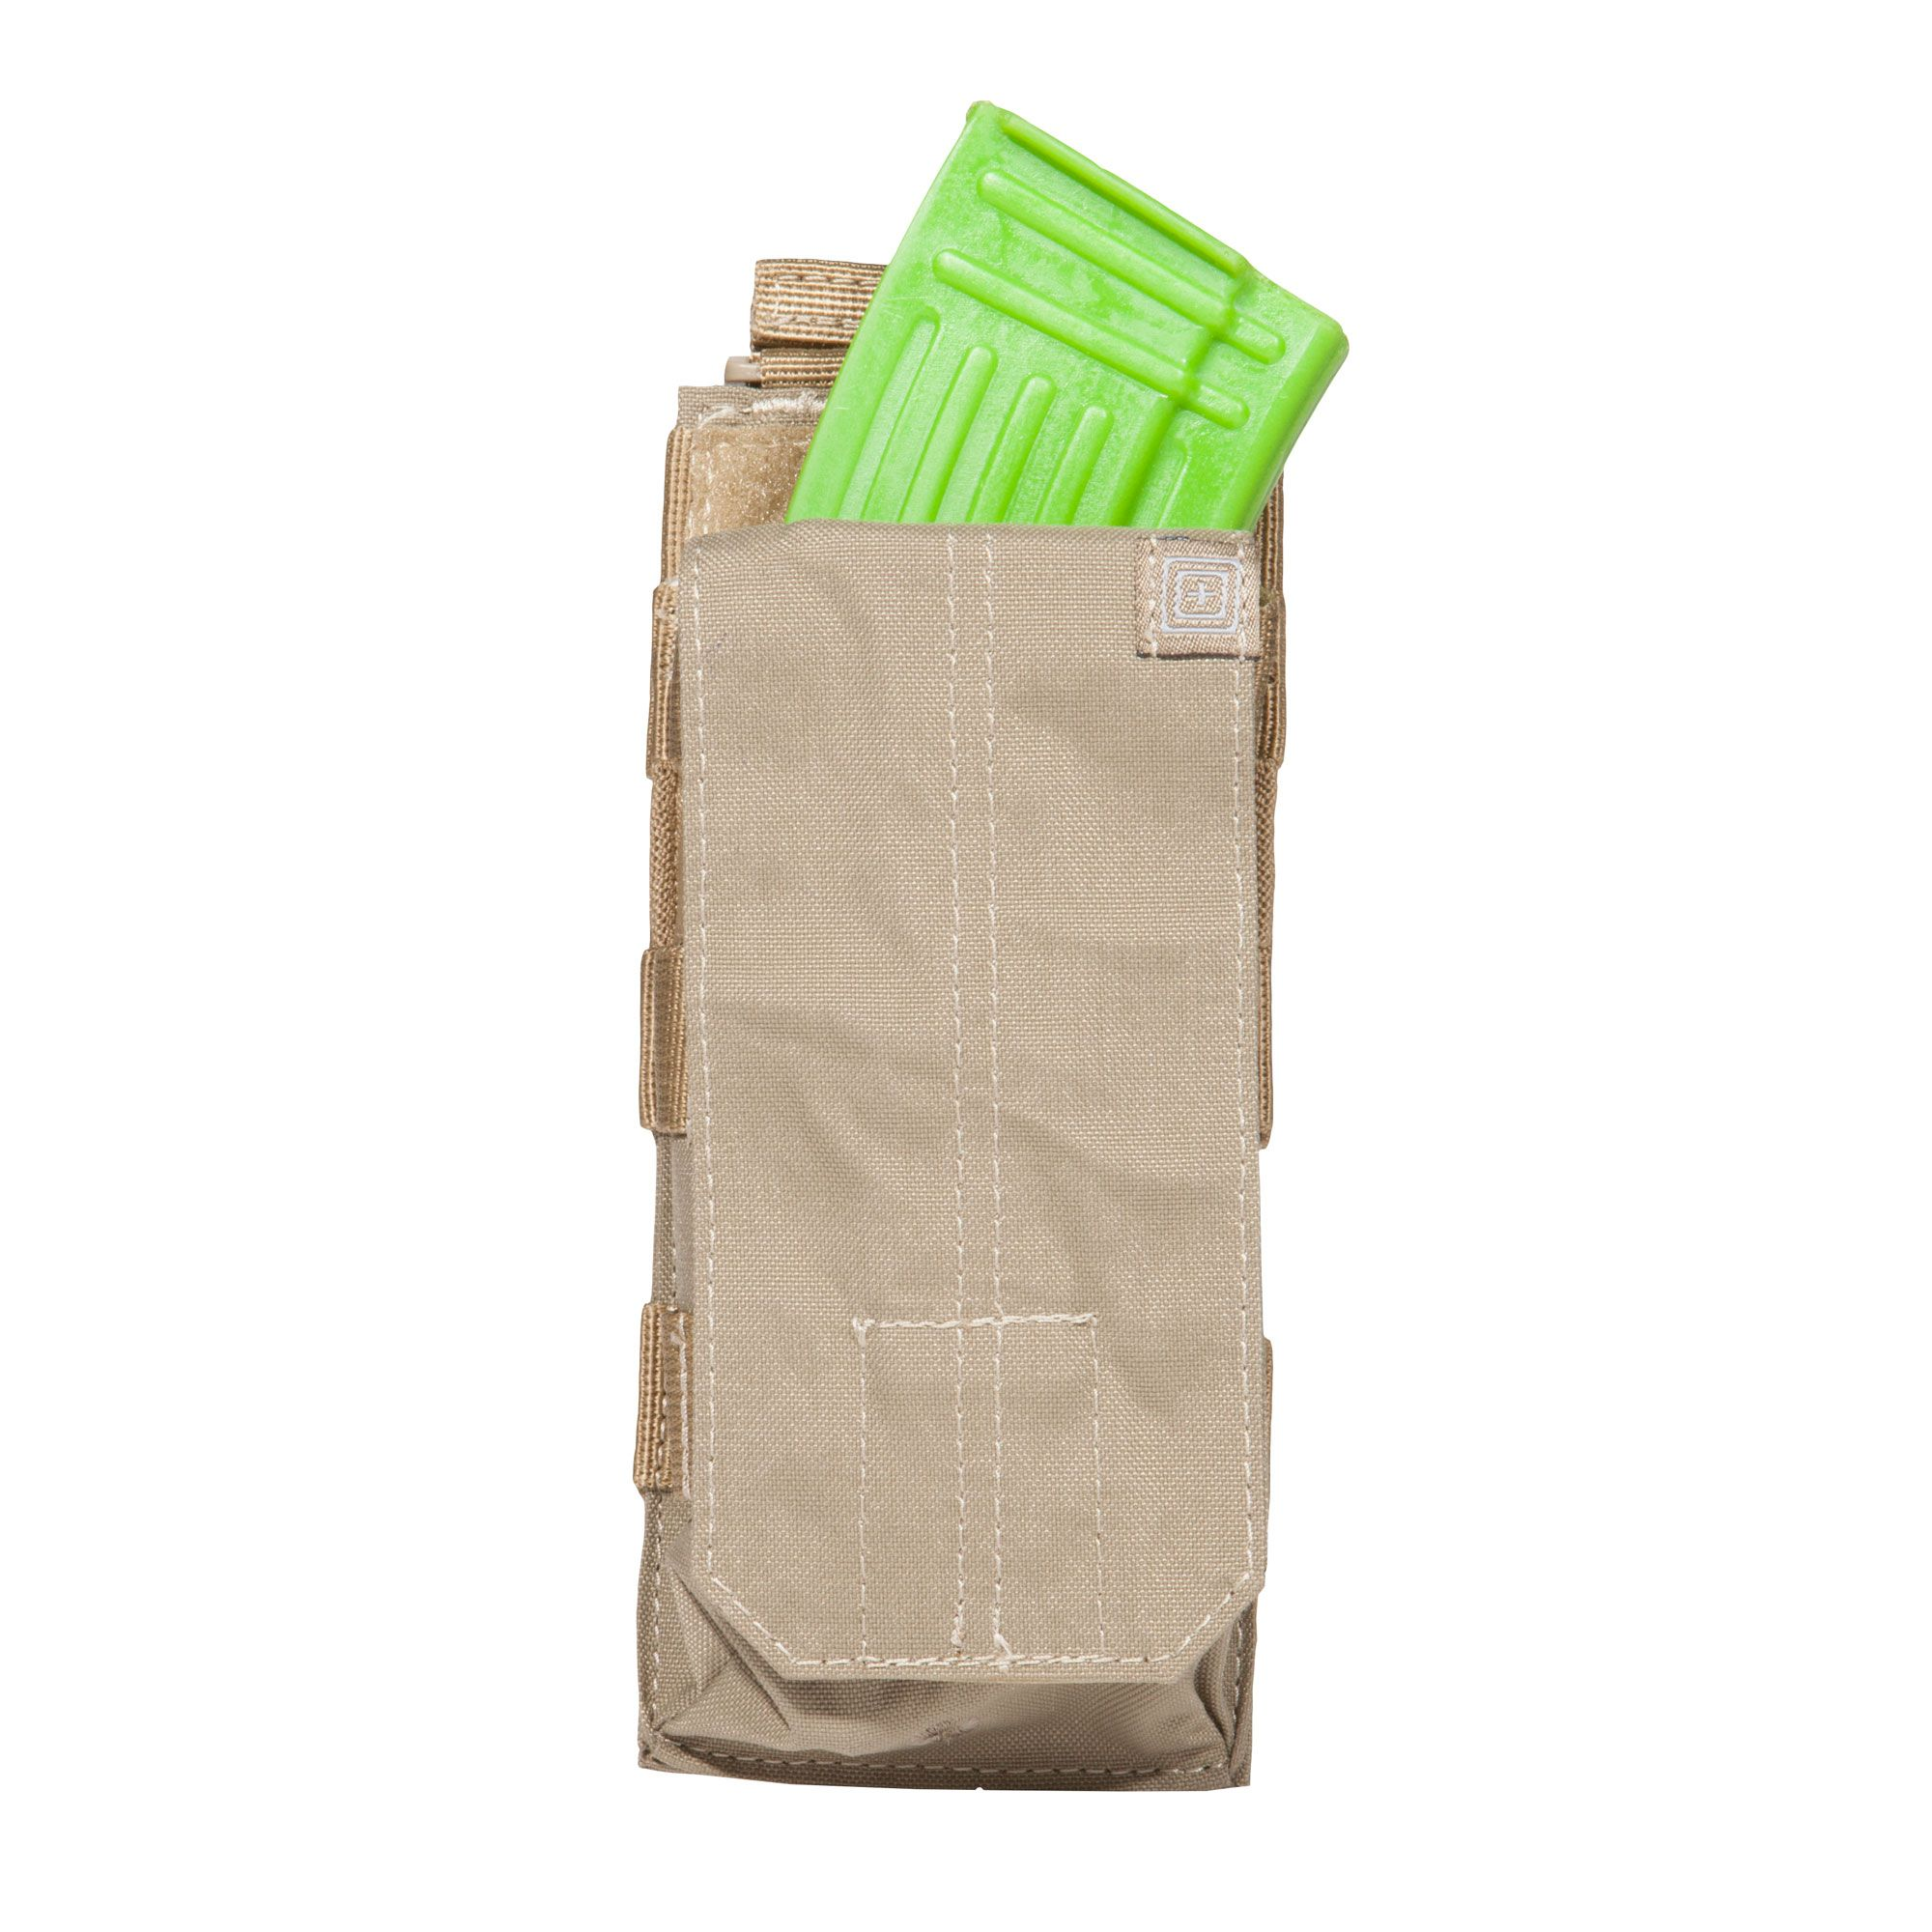 Pouch AK BUNGEECOVER SINGLE –  Sandstone